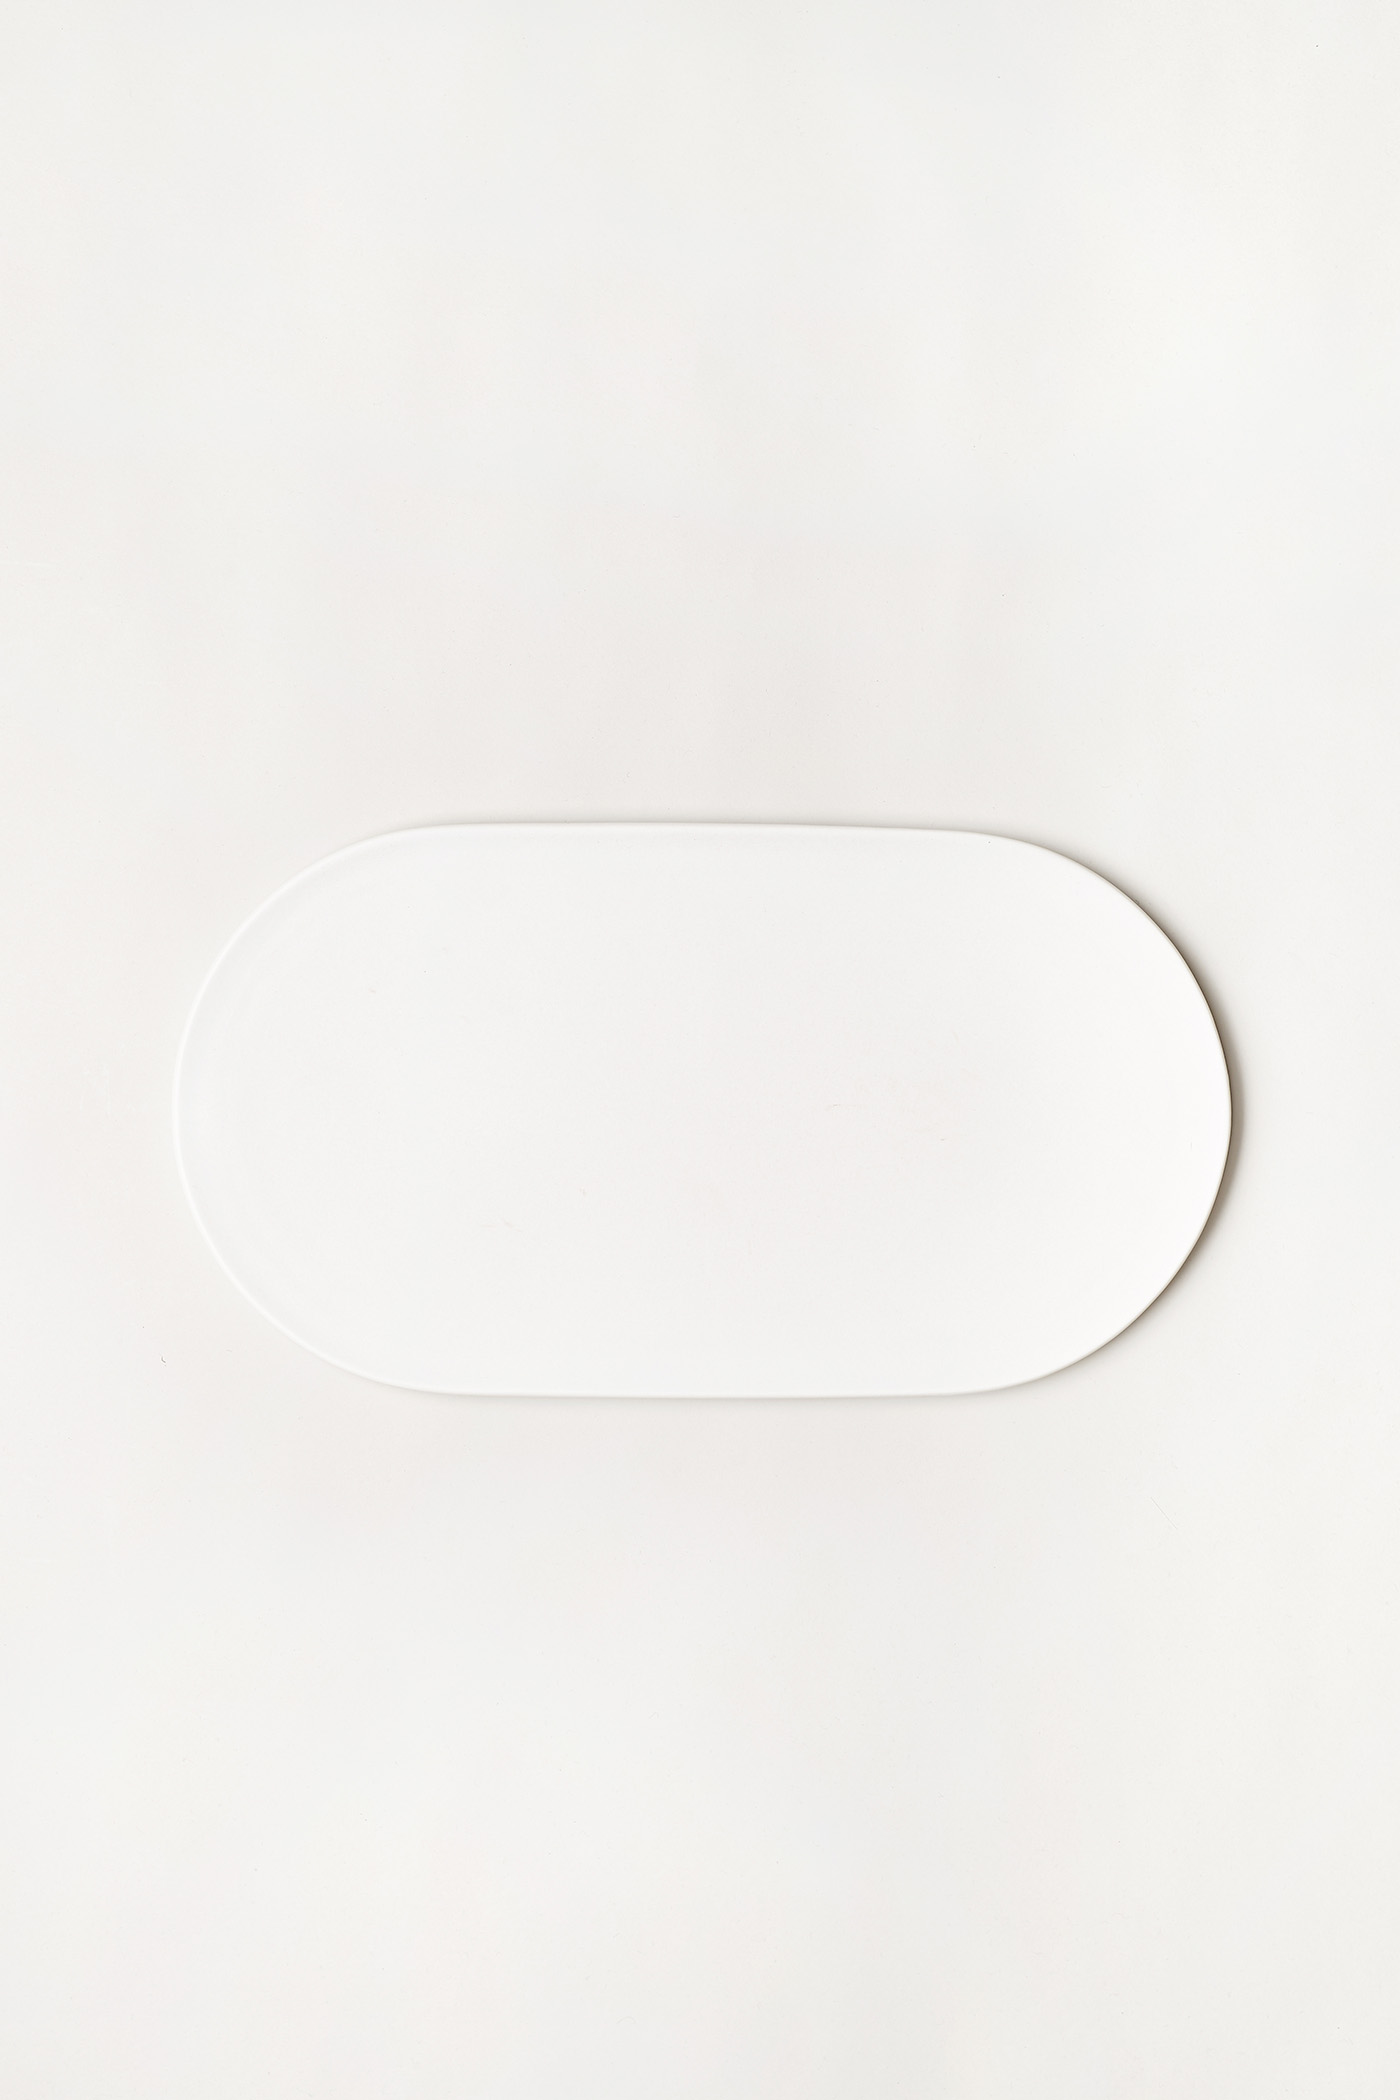 Jiro Elongated Serving Plate